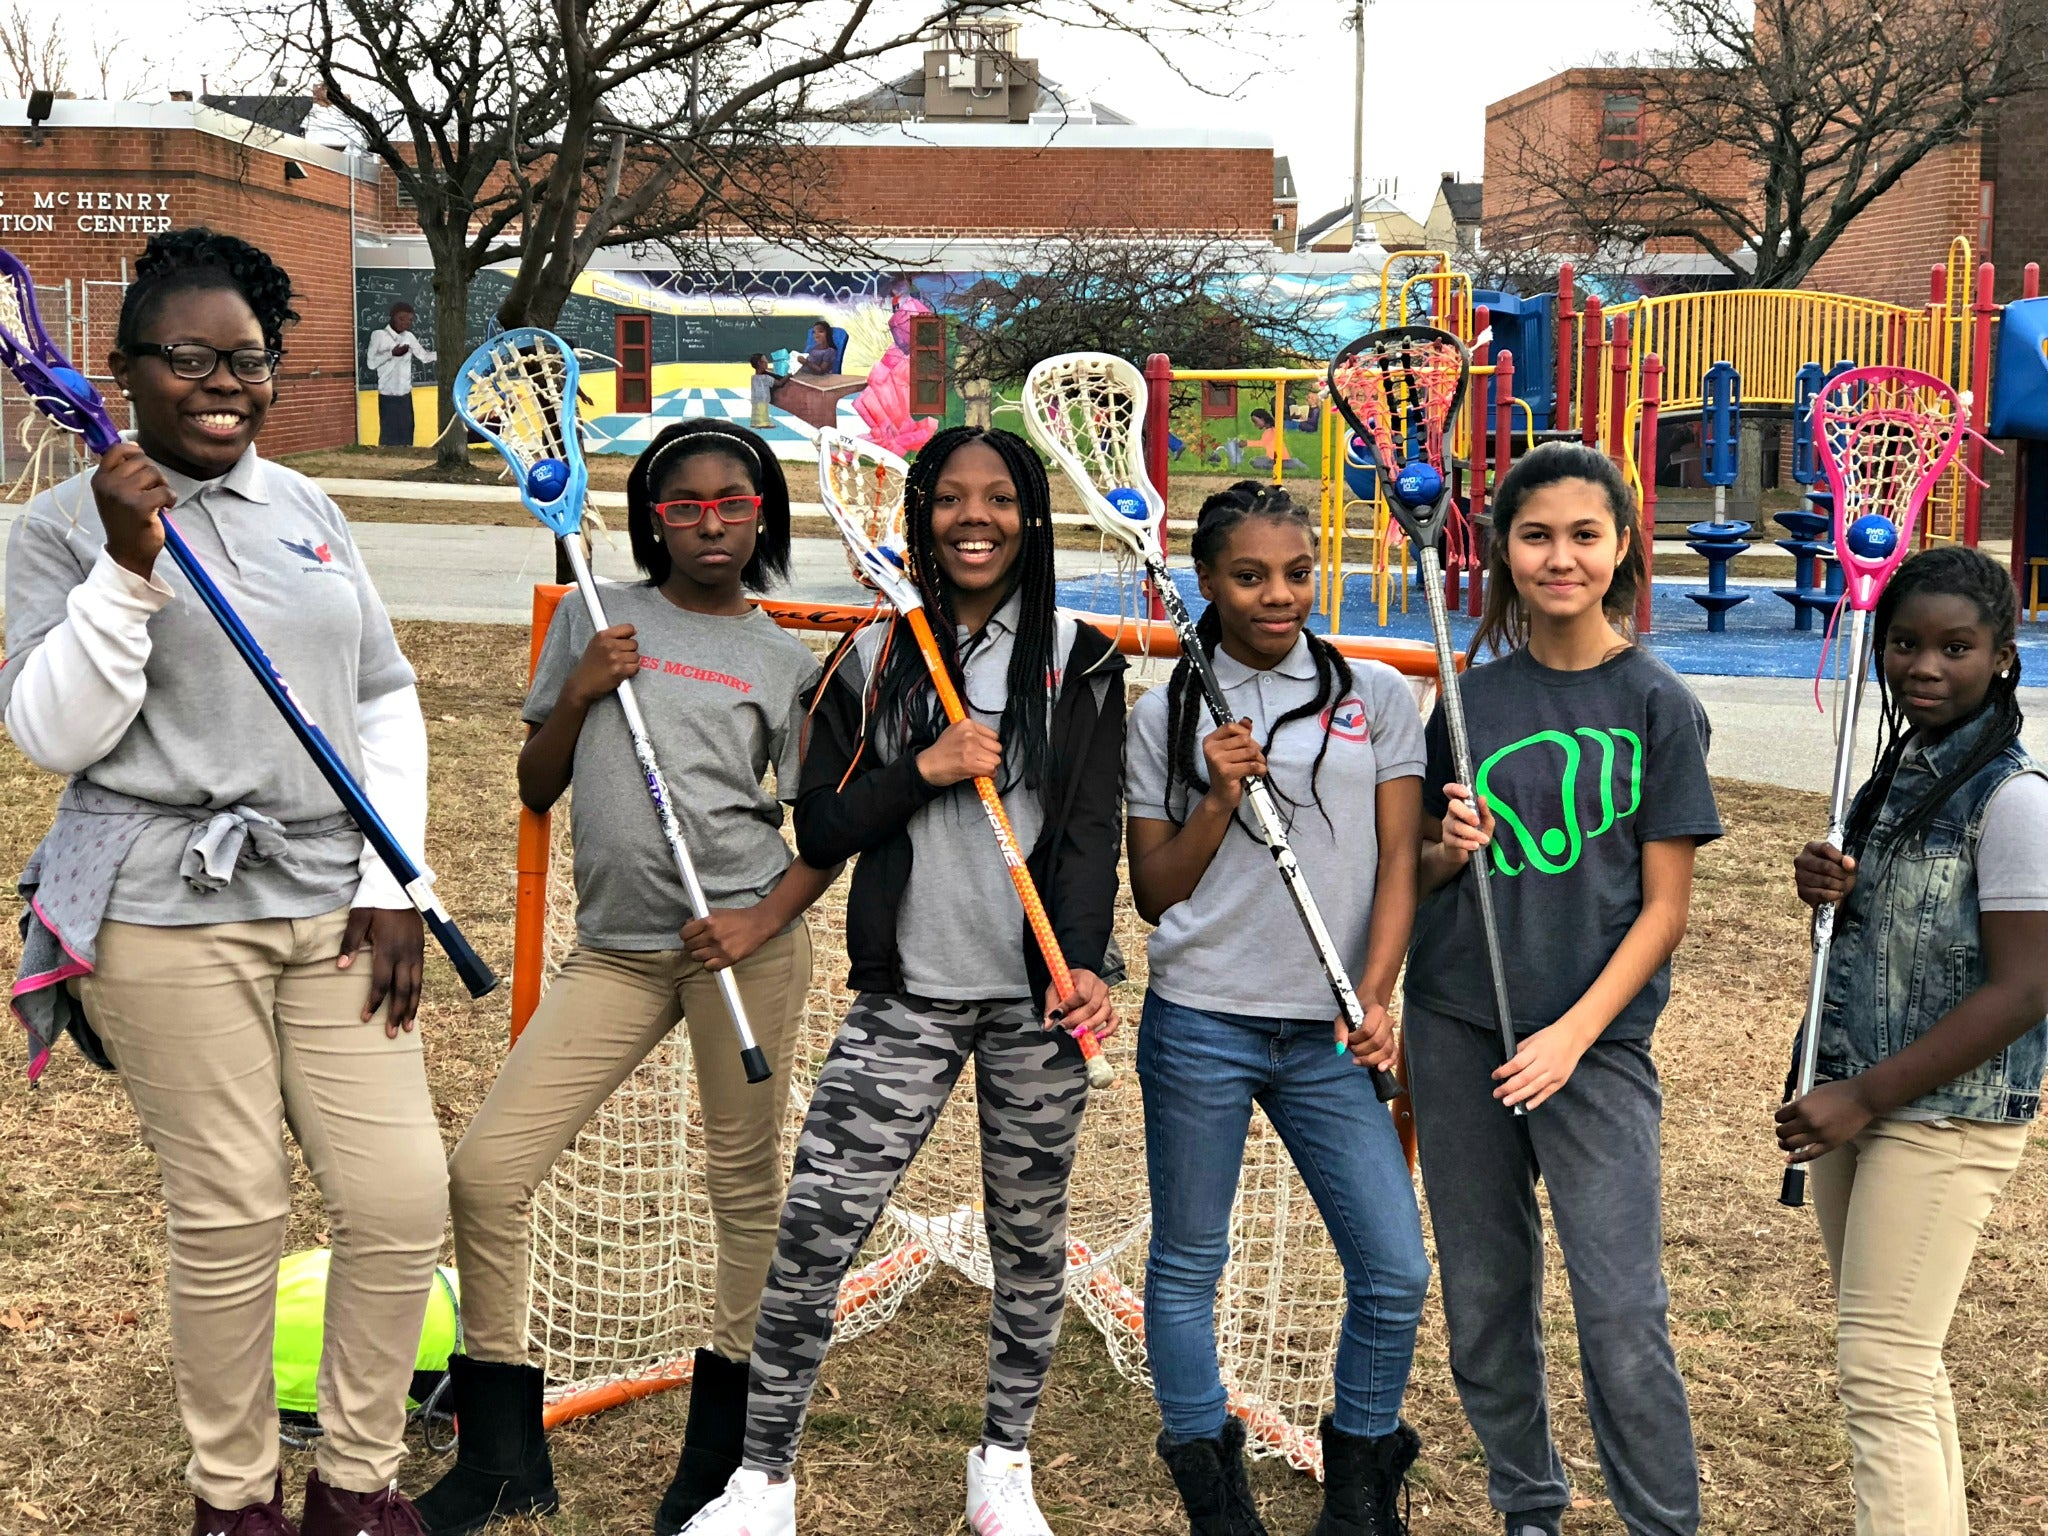 Group photo of Harlem Lacrosse players using Swax Lax soft lacrosse training balls